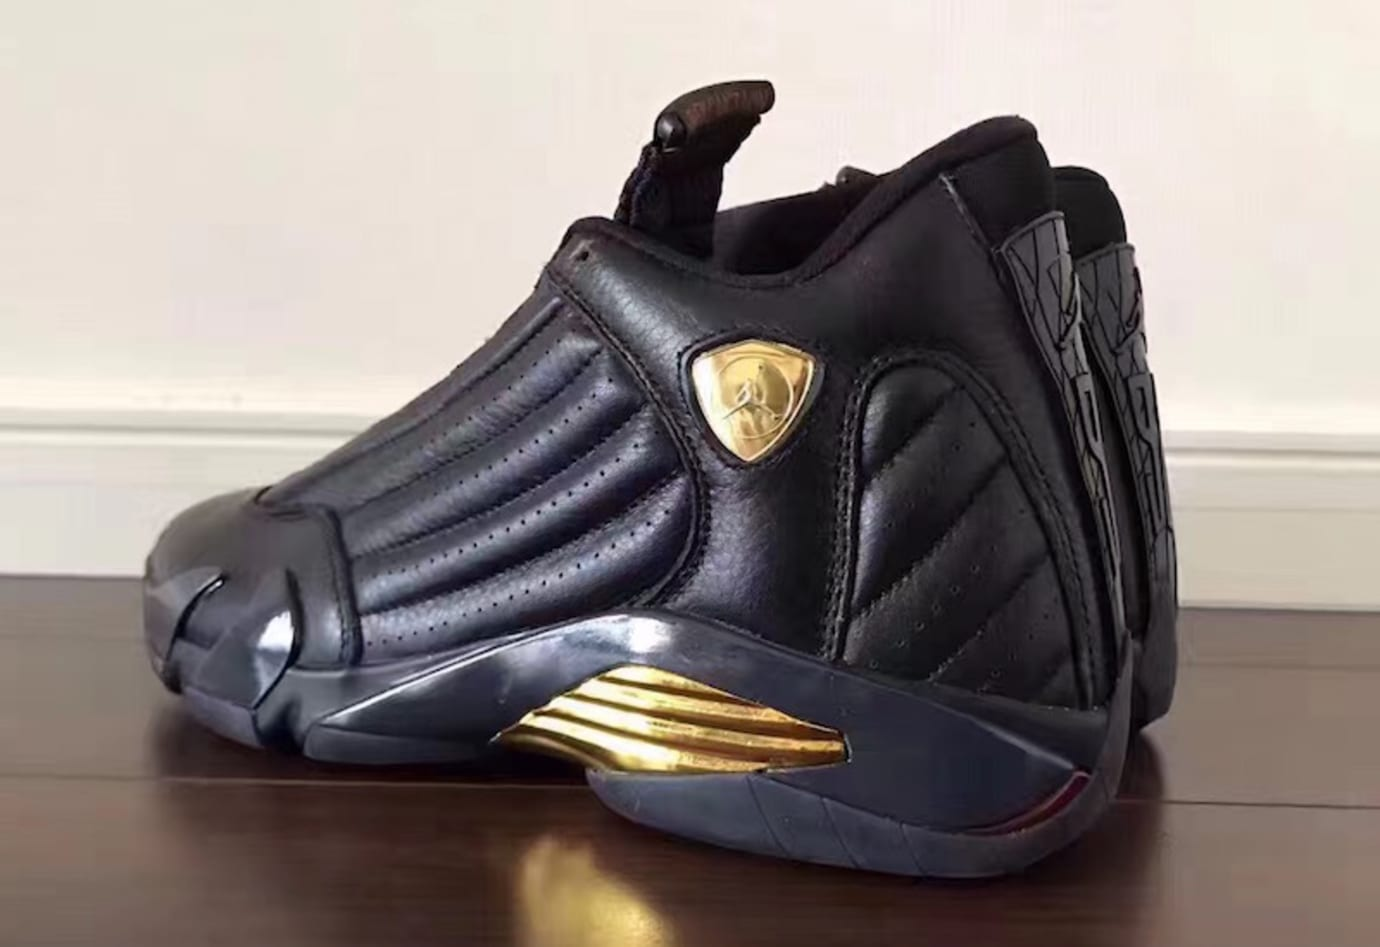 67a8304abef350 Air Jordan 14 Defining Moments Black Gold Release Date 487471-022 (1)